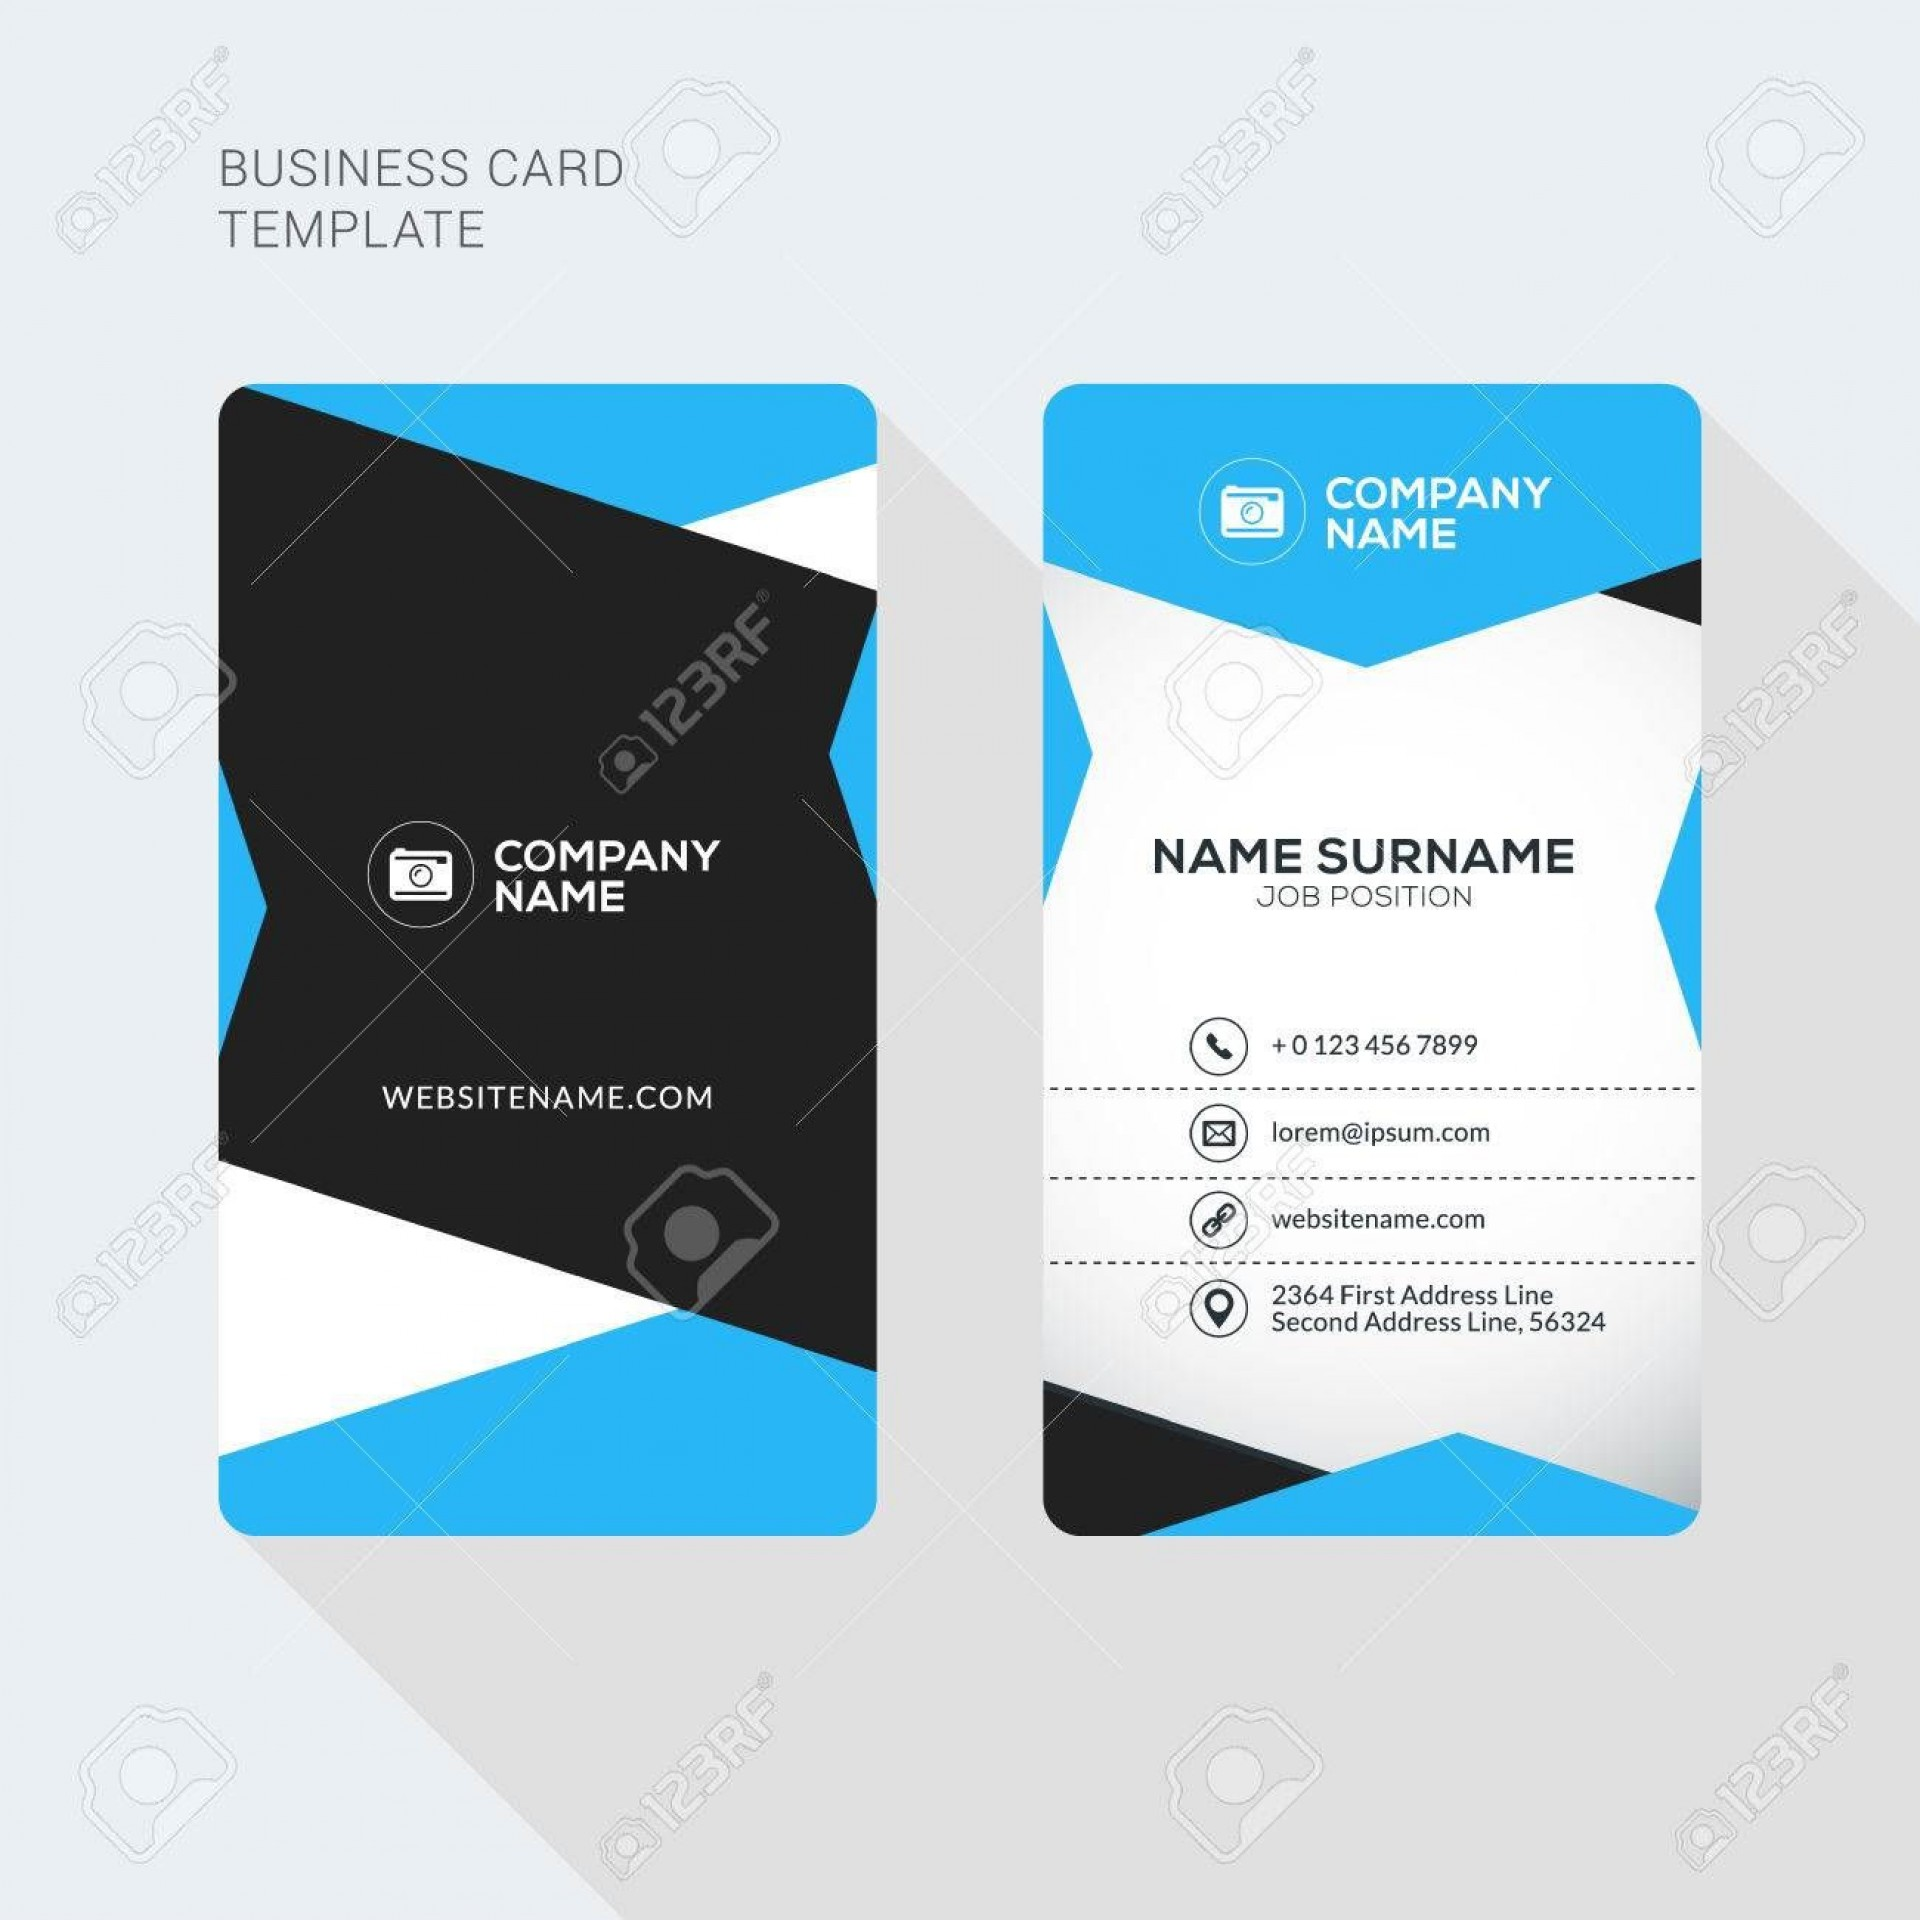 000 Shocking Double Sided Busines Card Template Photo  Templates Word Free Two Microsoft1920